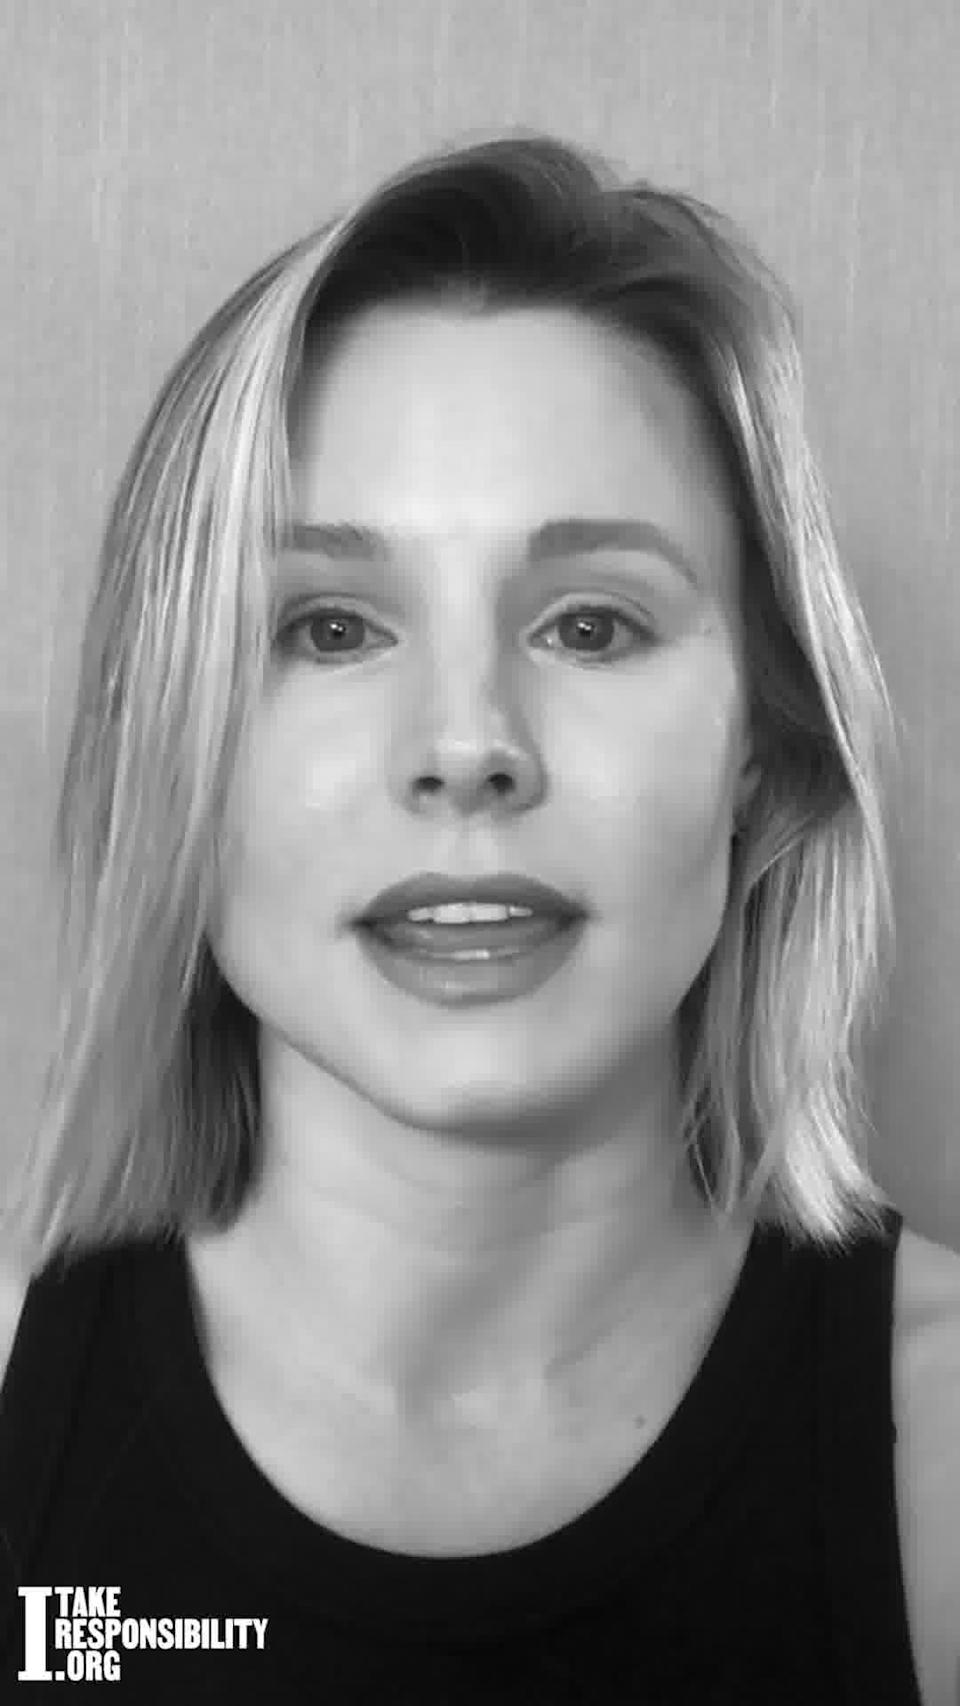 """Kristen Bell (pictured), Aaron Paul, Aly Raisman, Stanley Tucci and other stars appear in the new """"I Take Responsibility"""" PSA. (Confluential Content)"""